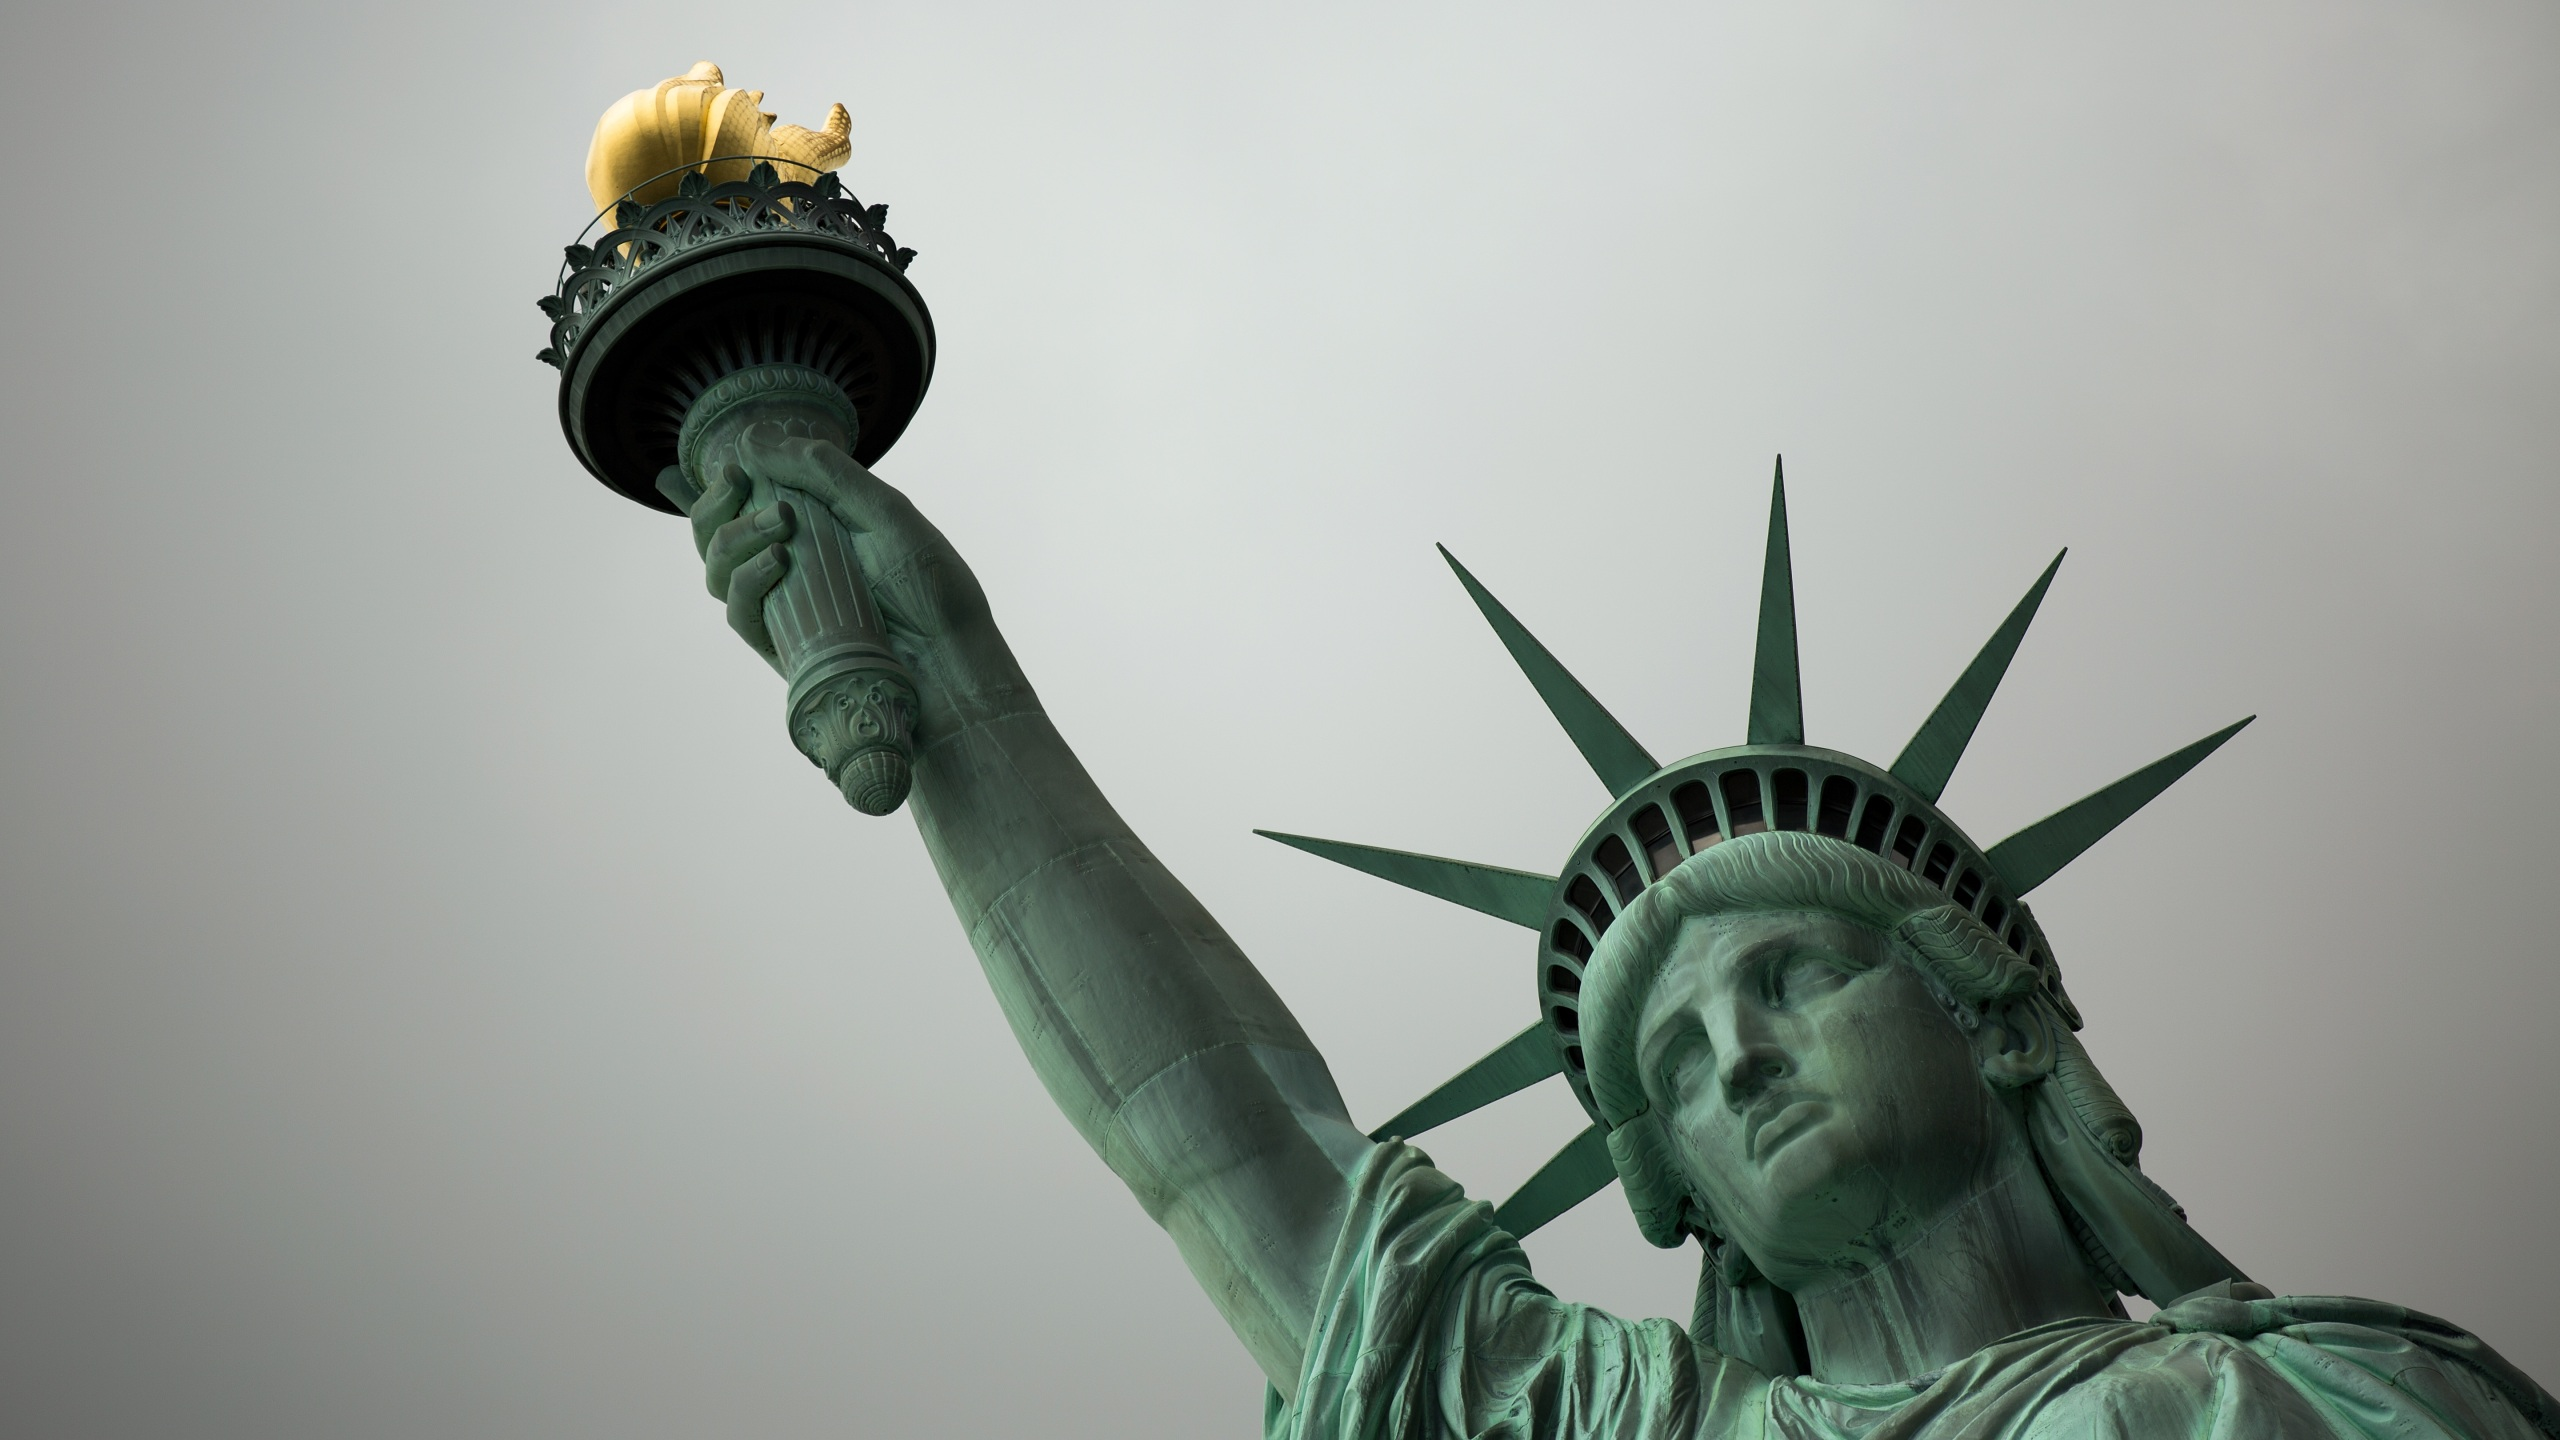 statue of liberty generic